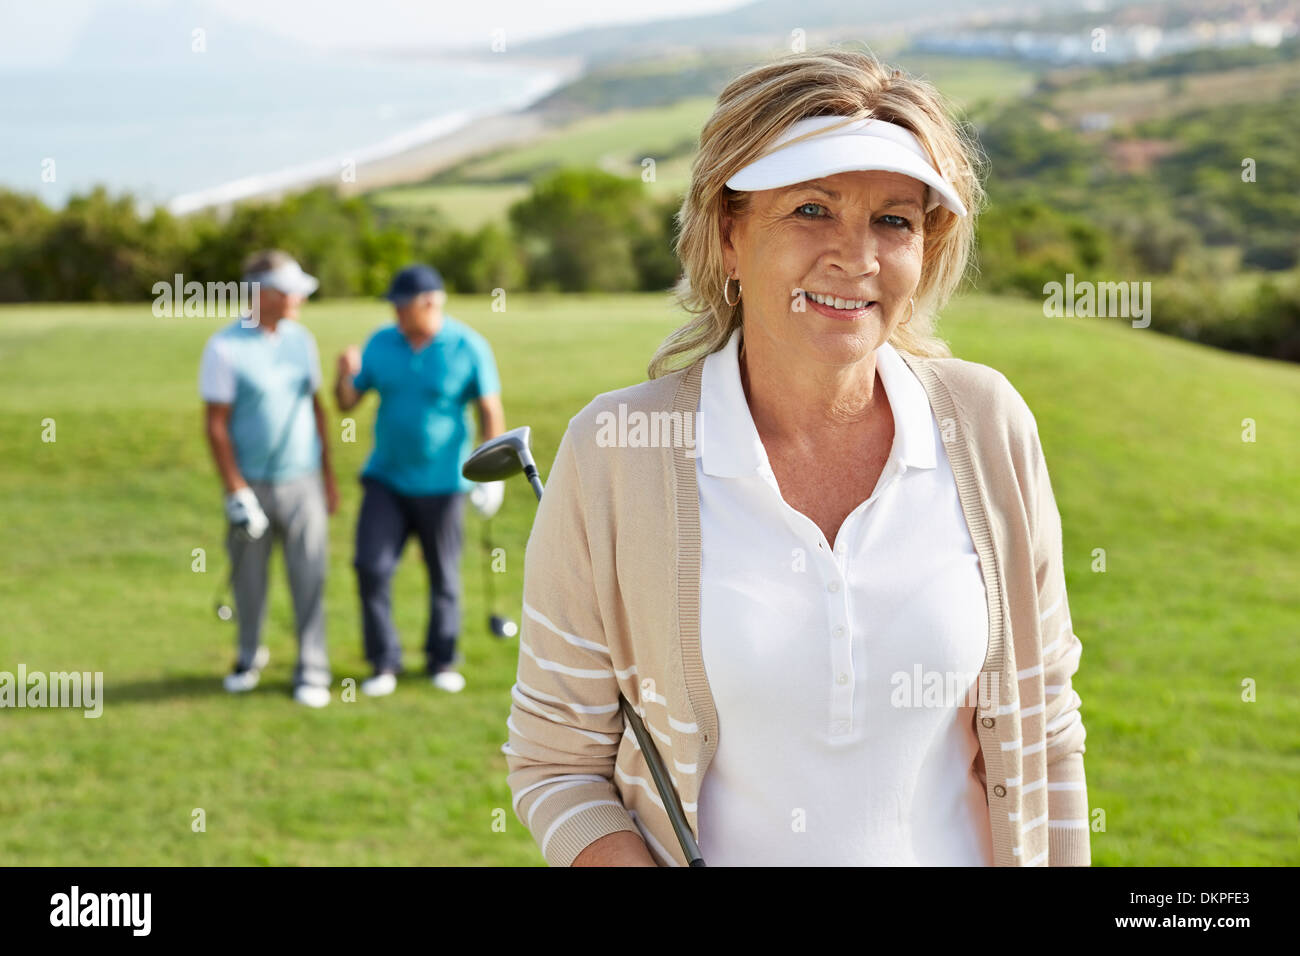 Senior friends on golf course - Stock Image